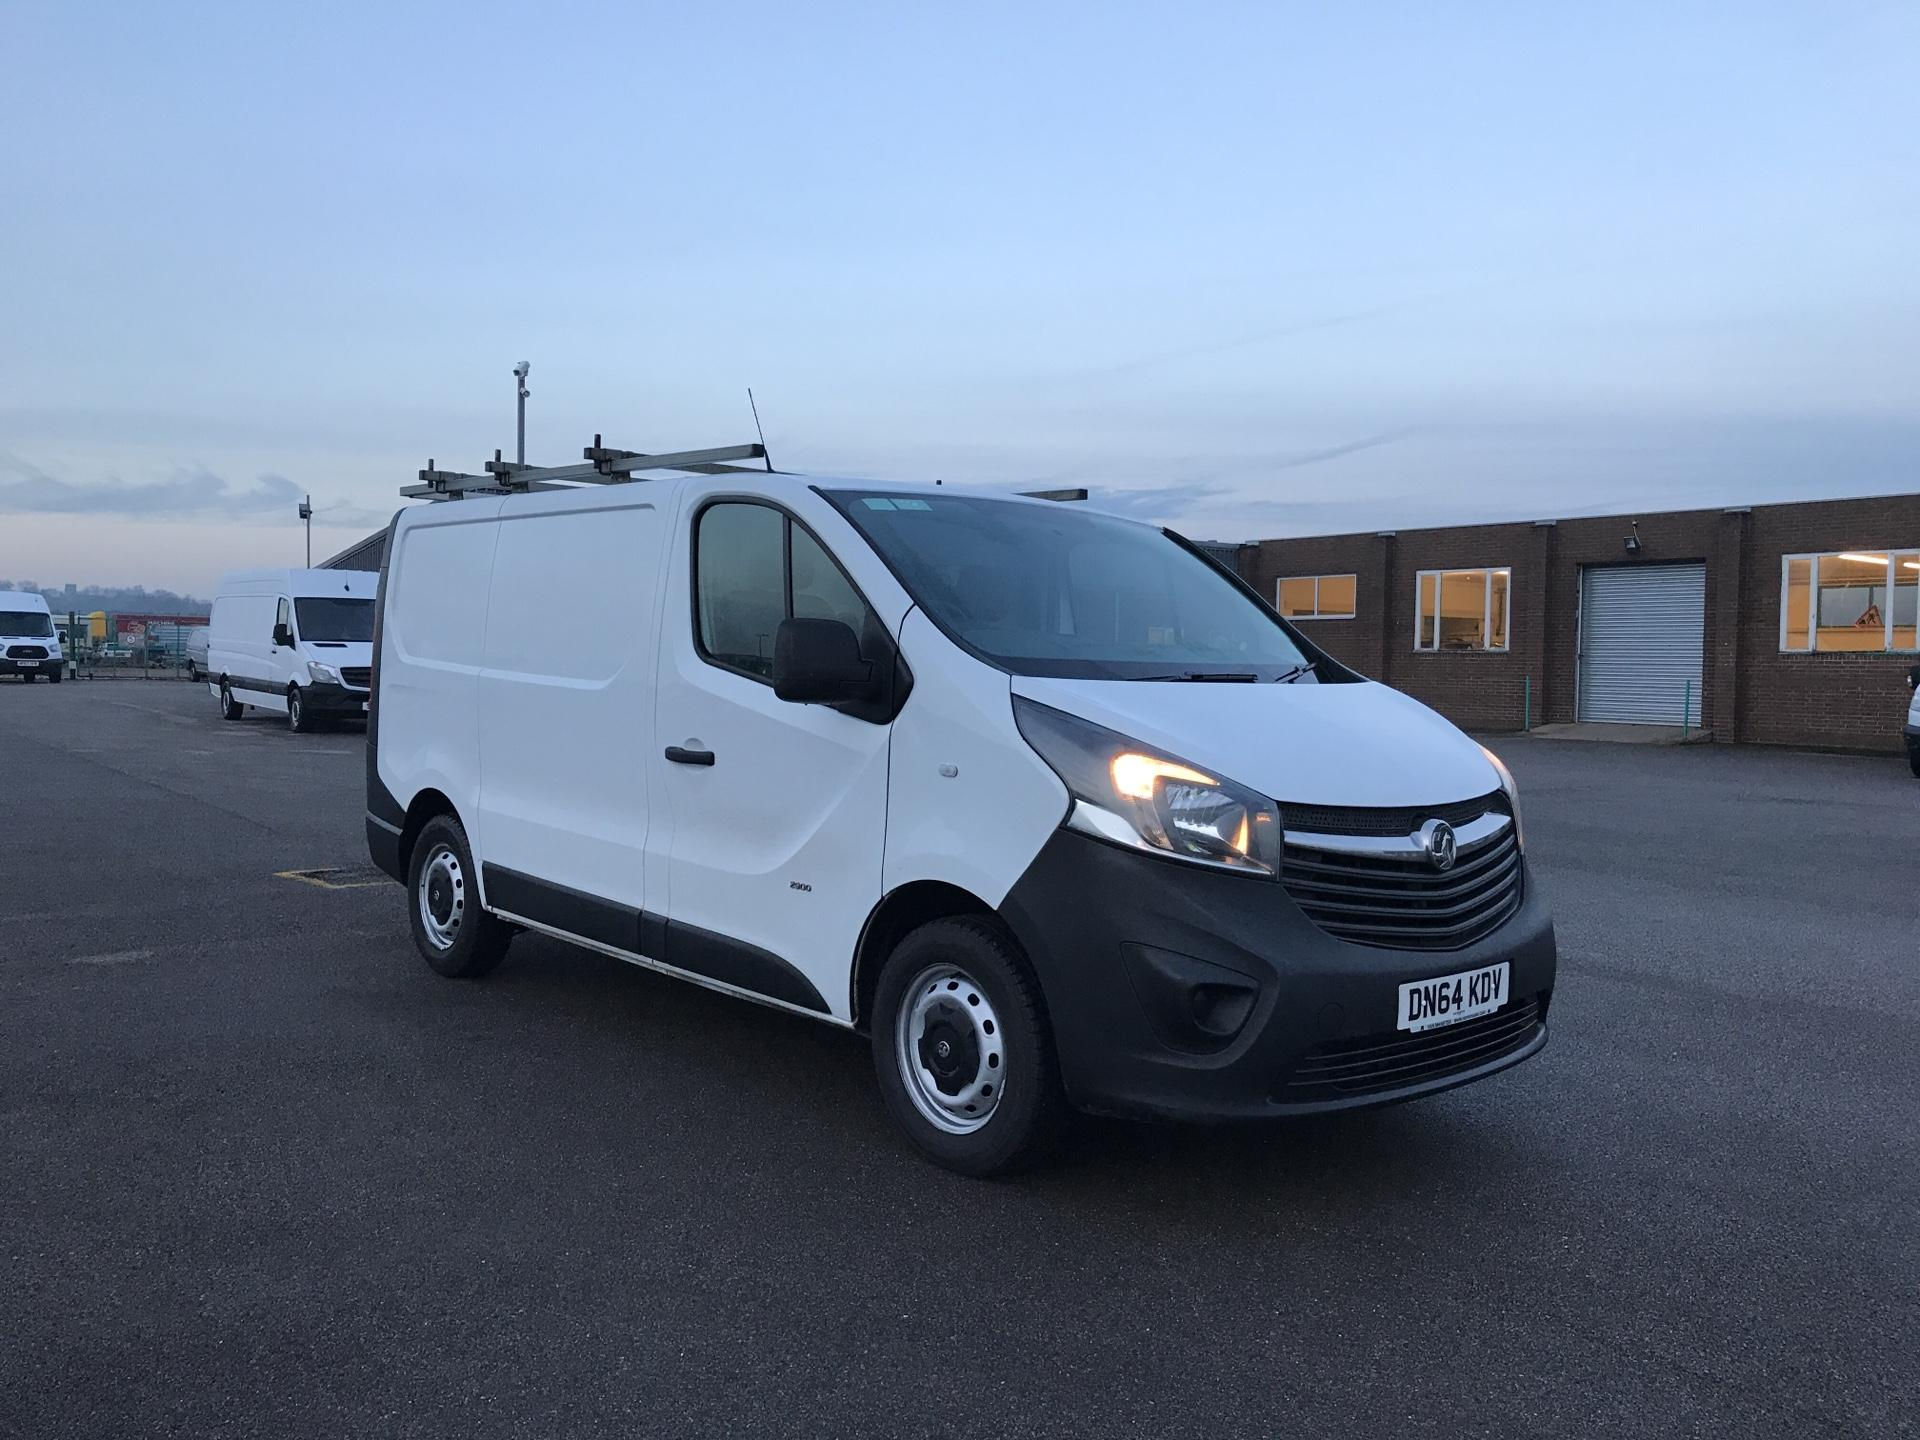 2014 Vauxhall Vivaro L1 H1 2900 1.6 115PS EURO 5. VALUE RANGE VEHICLE - CONDITION REFLECTED IN PRICE (DN64KDV)